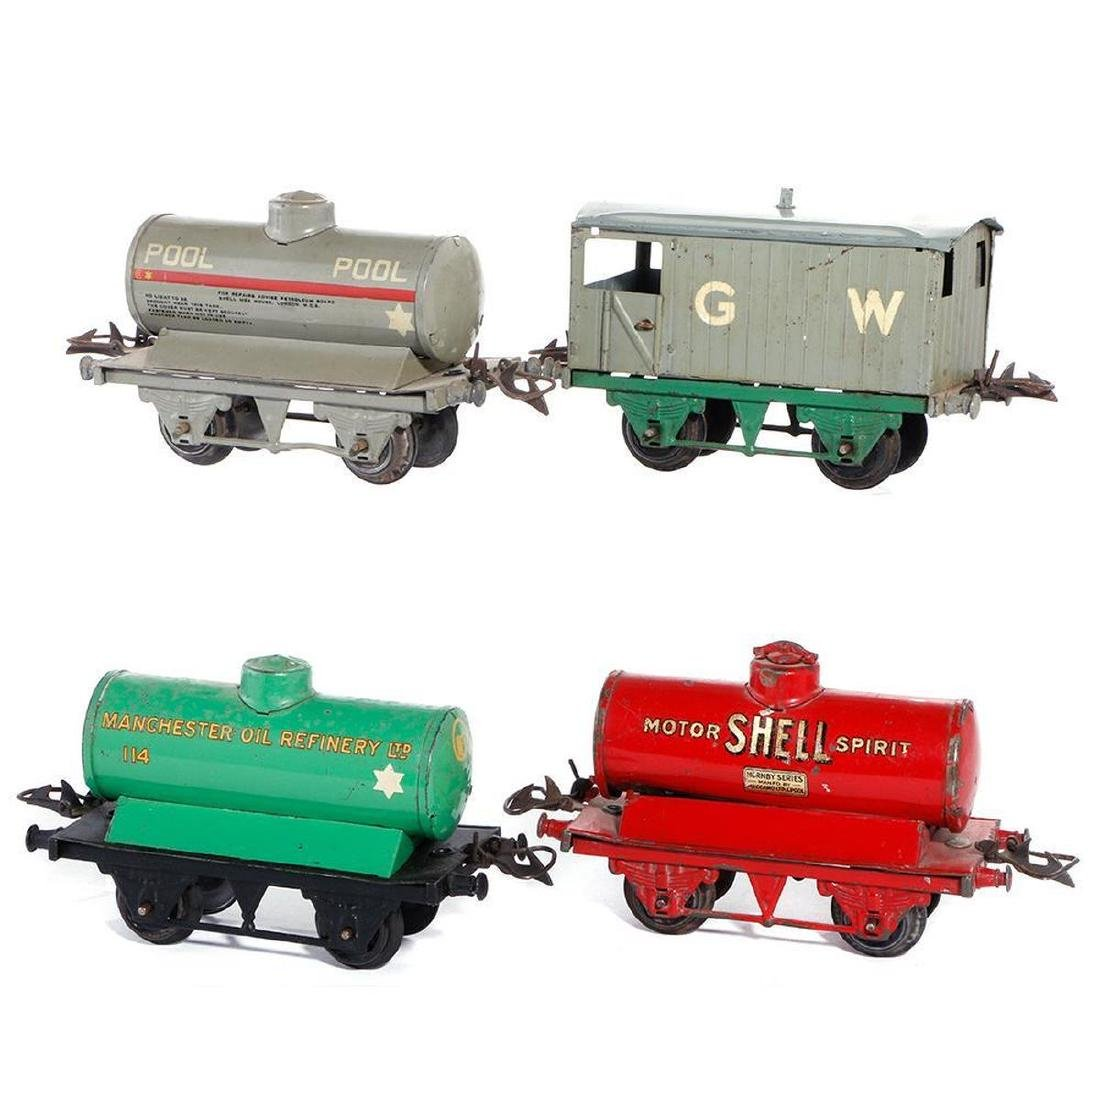 Group of Hornby freight cars